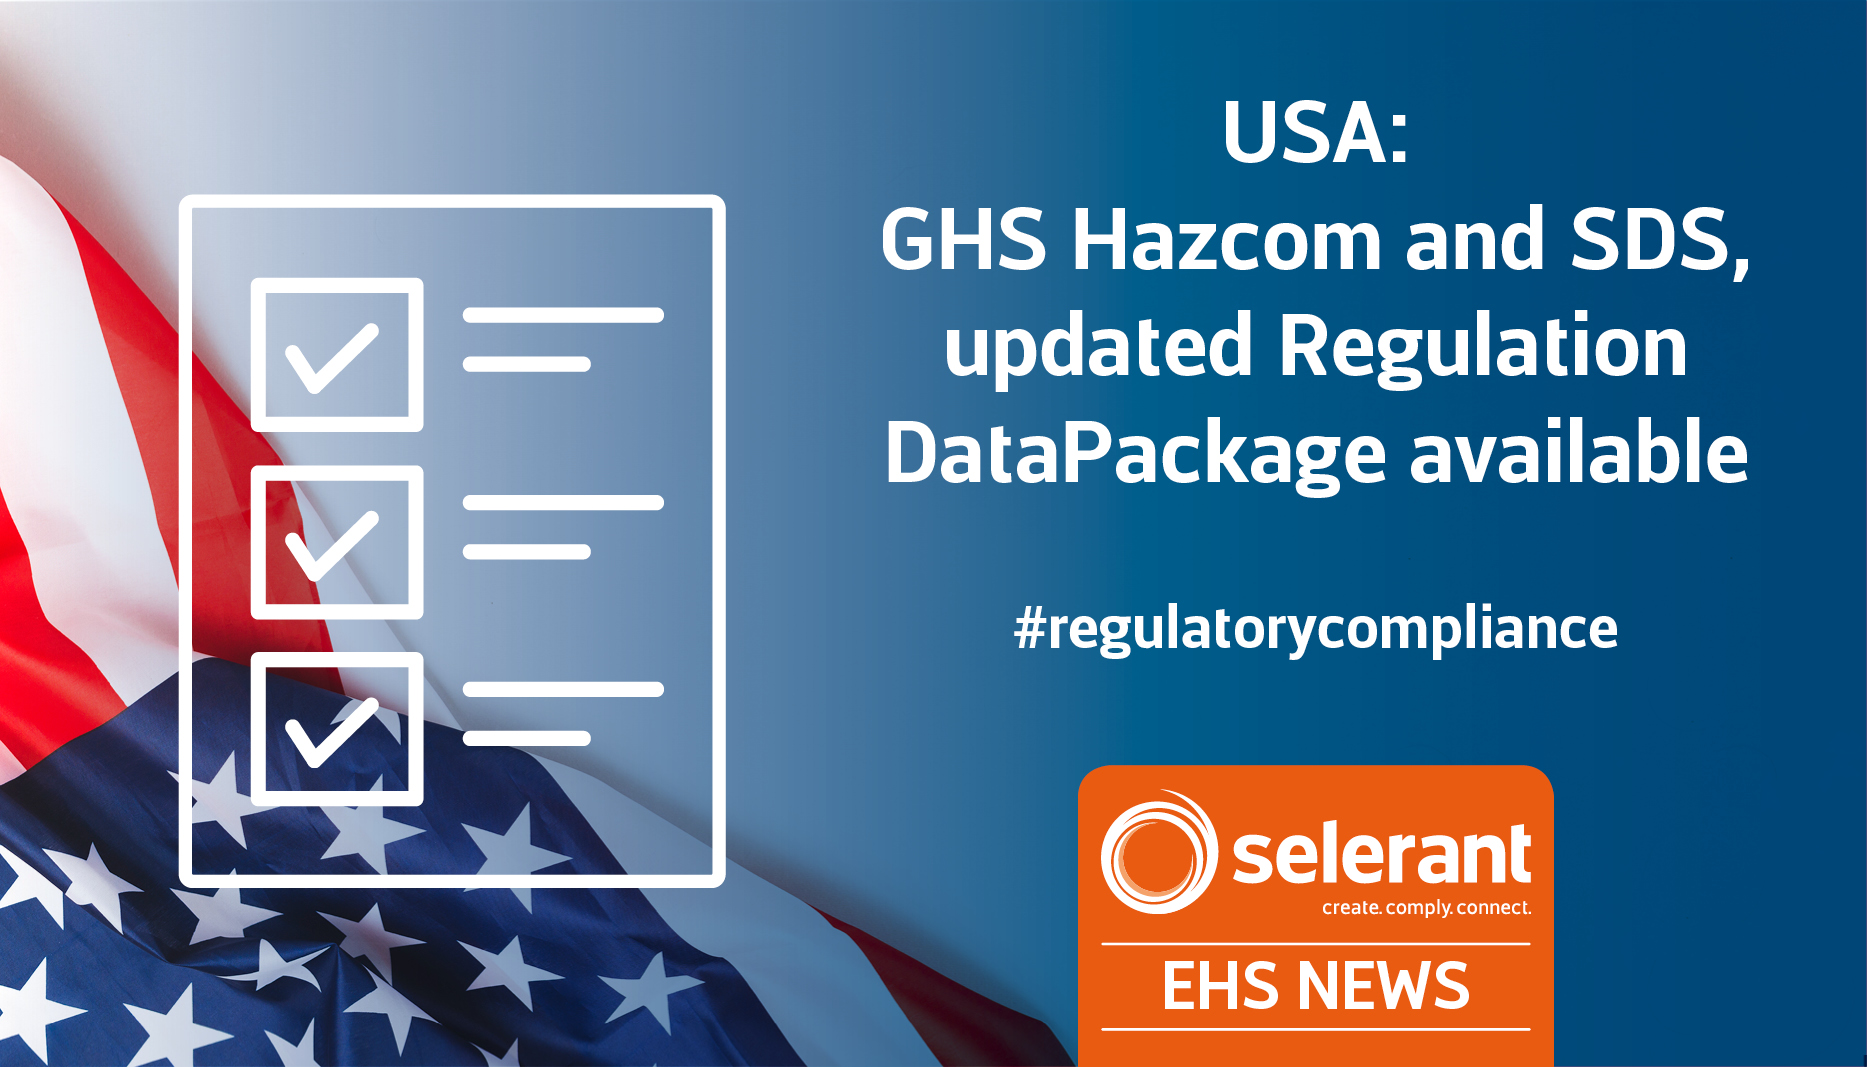 USA: GHS Hazcom and SDS, updated Regulation DataPackage available